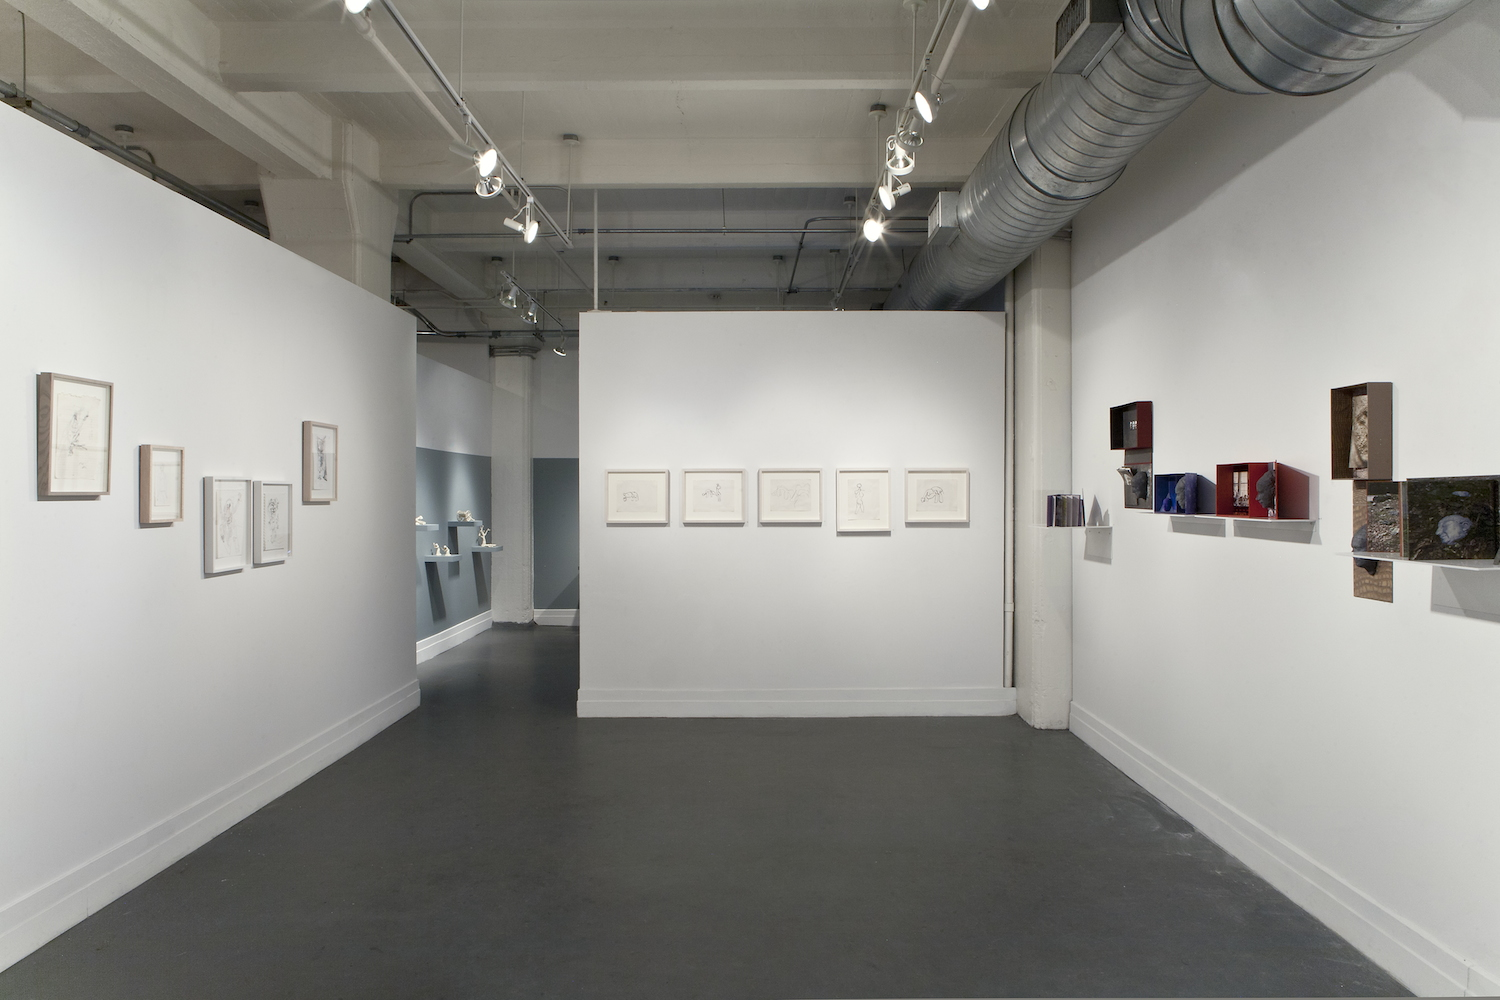 Life Line , 2013 Solo exhibition.Installation view at A.I.R. Gallery